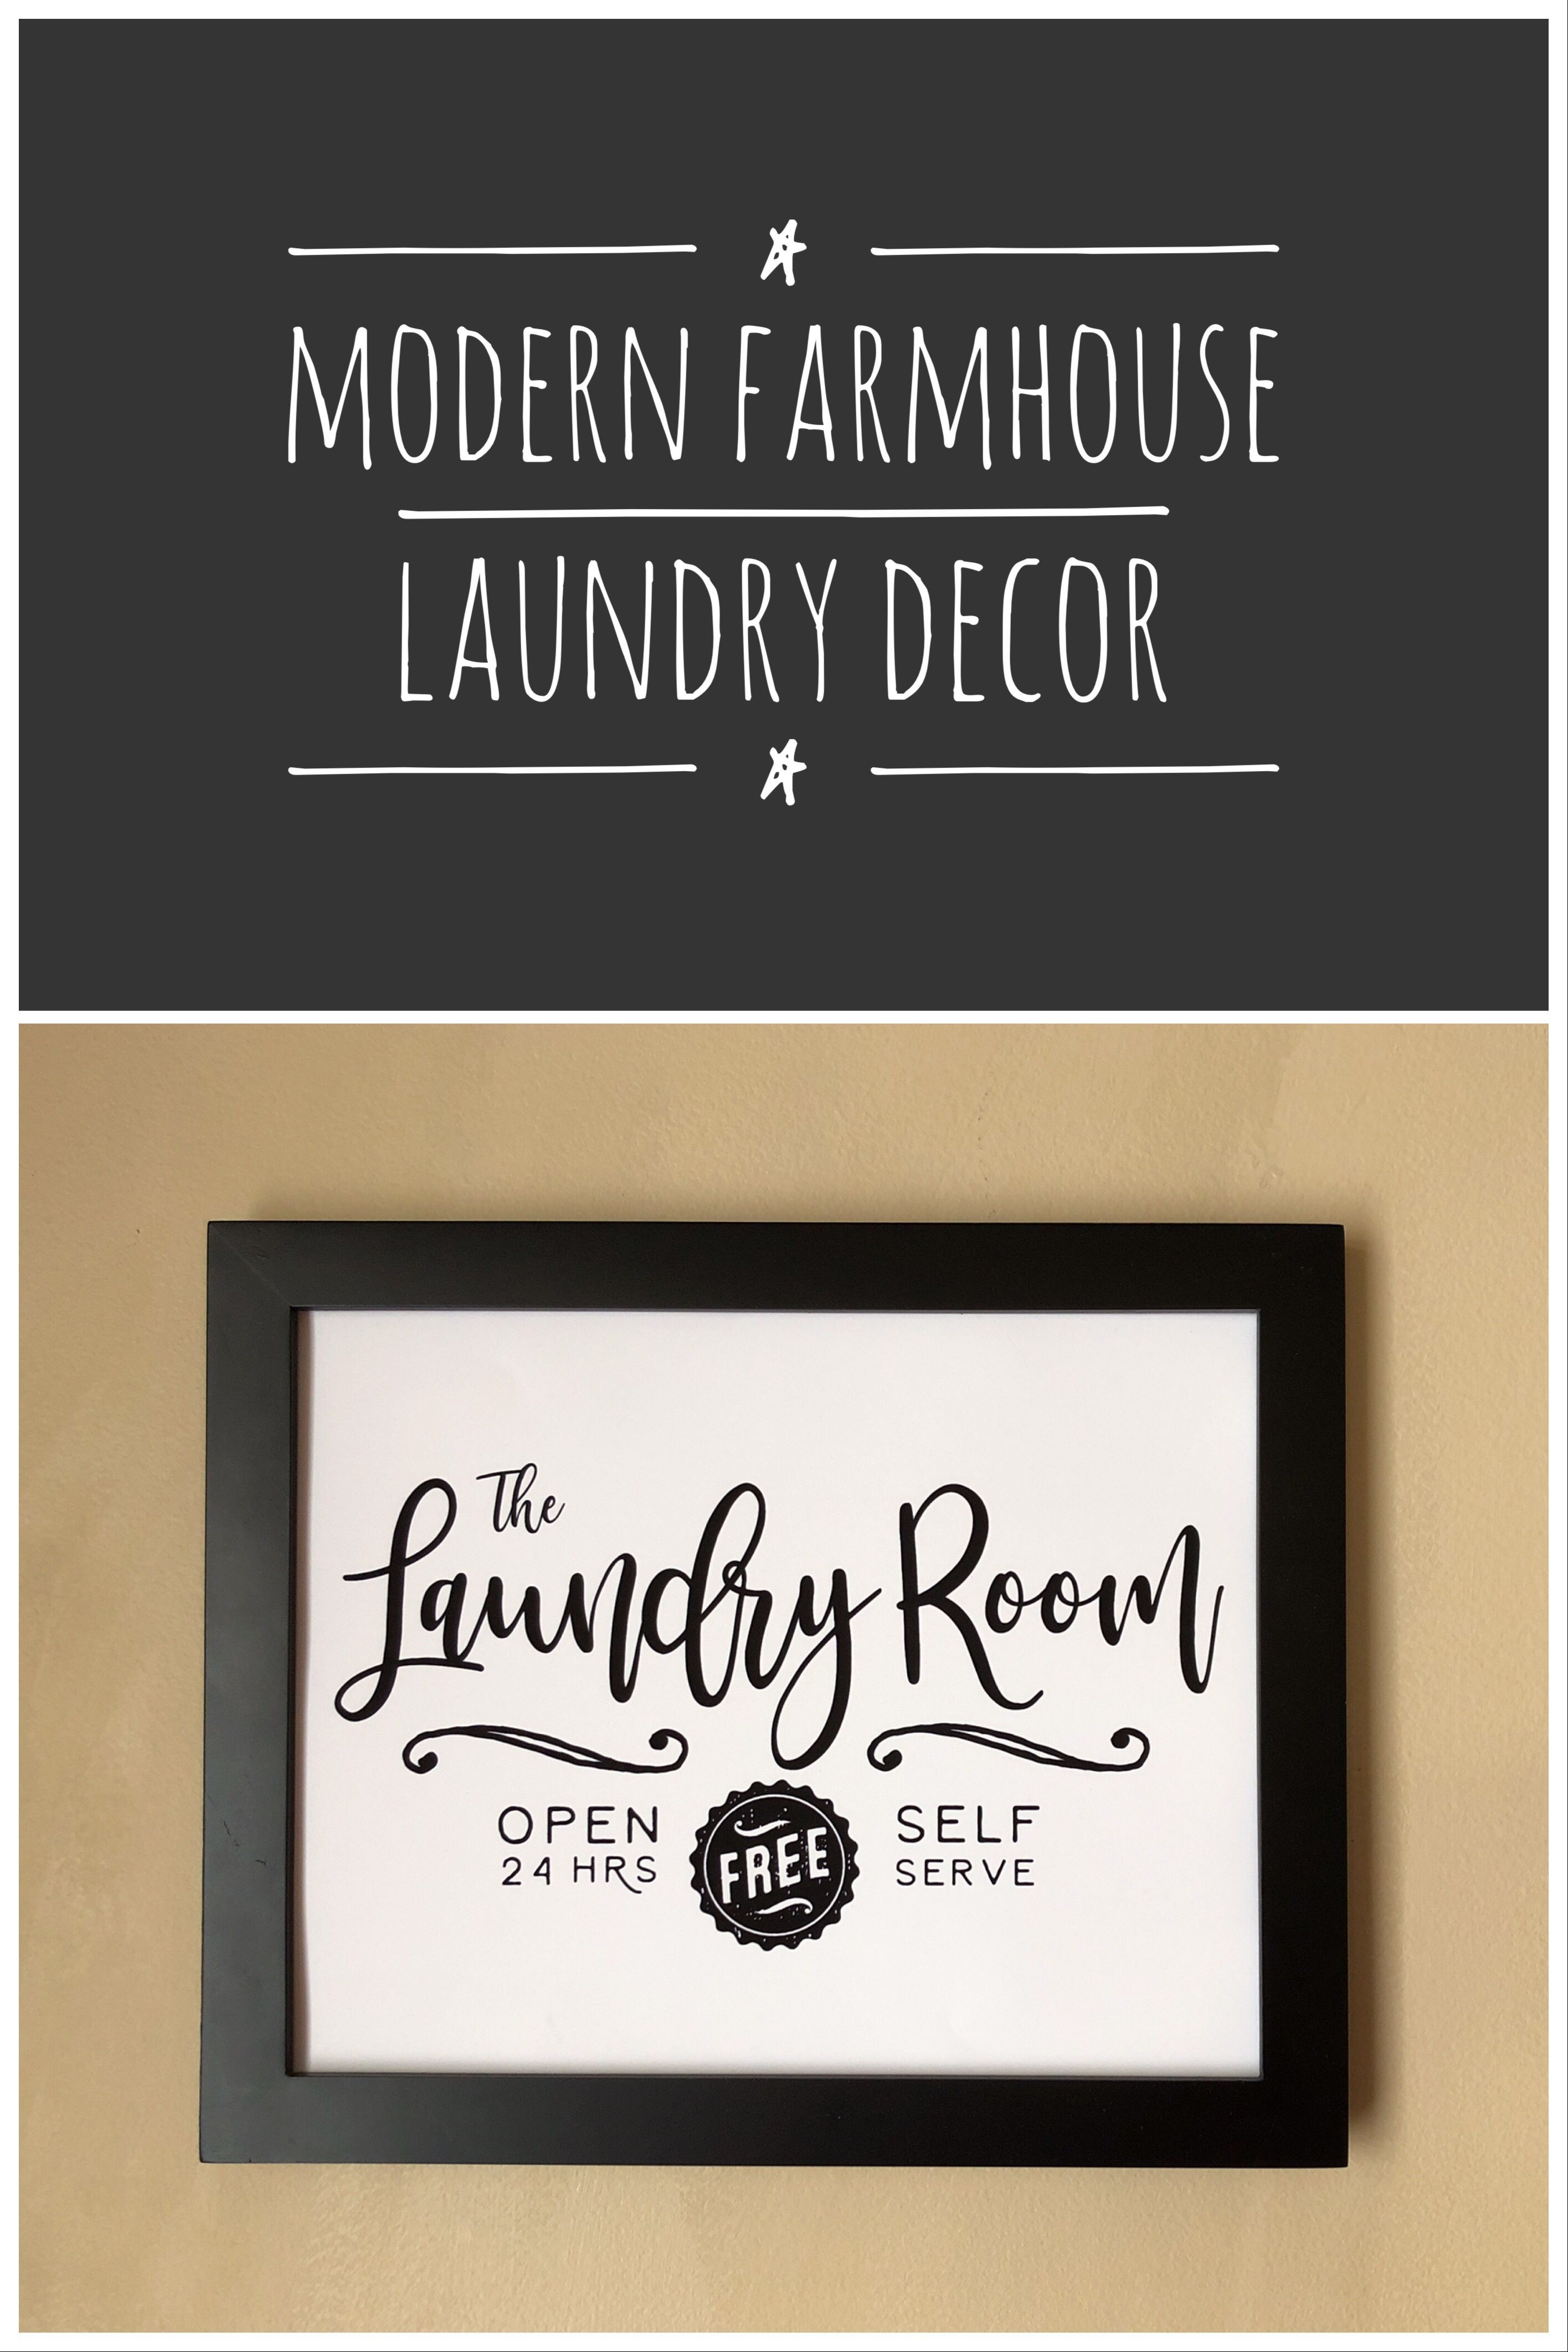 Vintage Style Laundry Room Sign Printable Funny Laundry Printable Art Farmhouse Laundry Digital Art To Frame Or Diy Project Ideas Room Signs Laundry Room Signs Laundry Humor